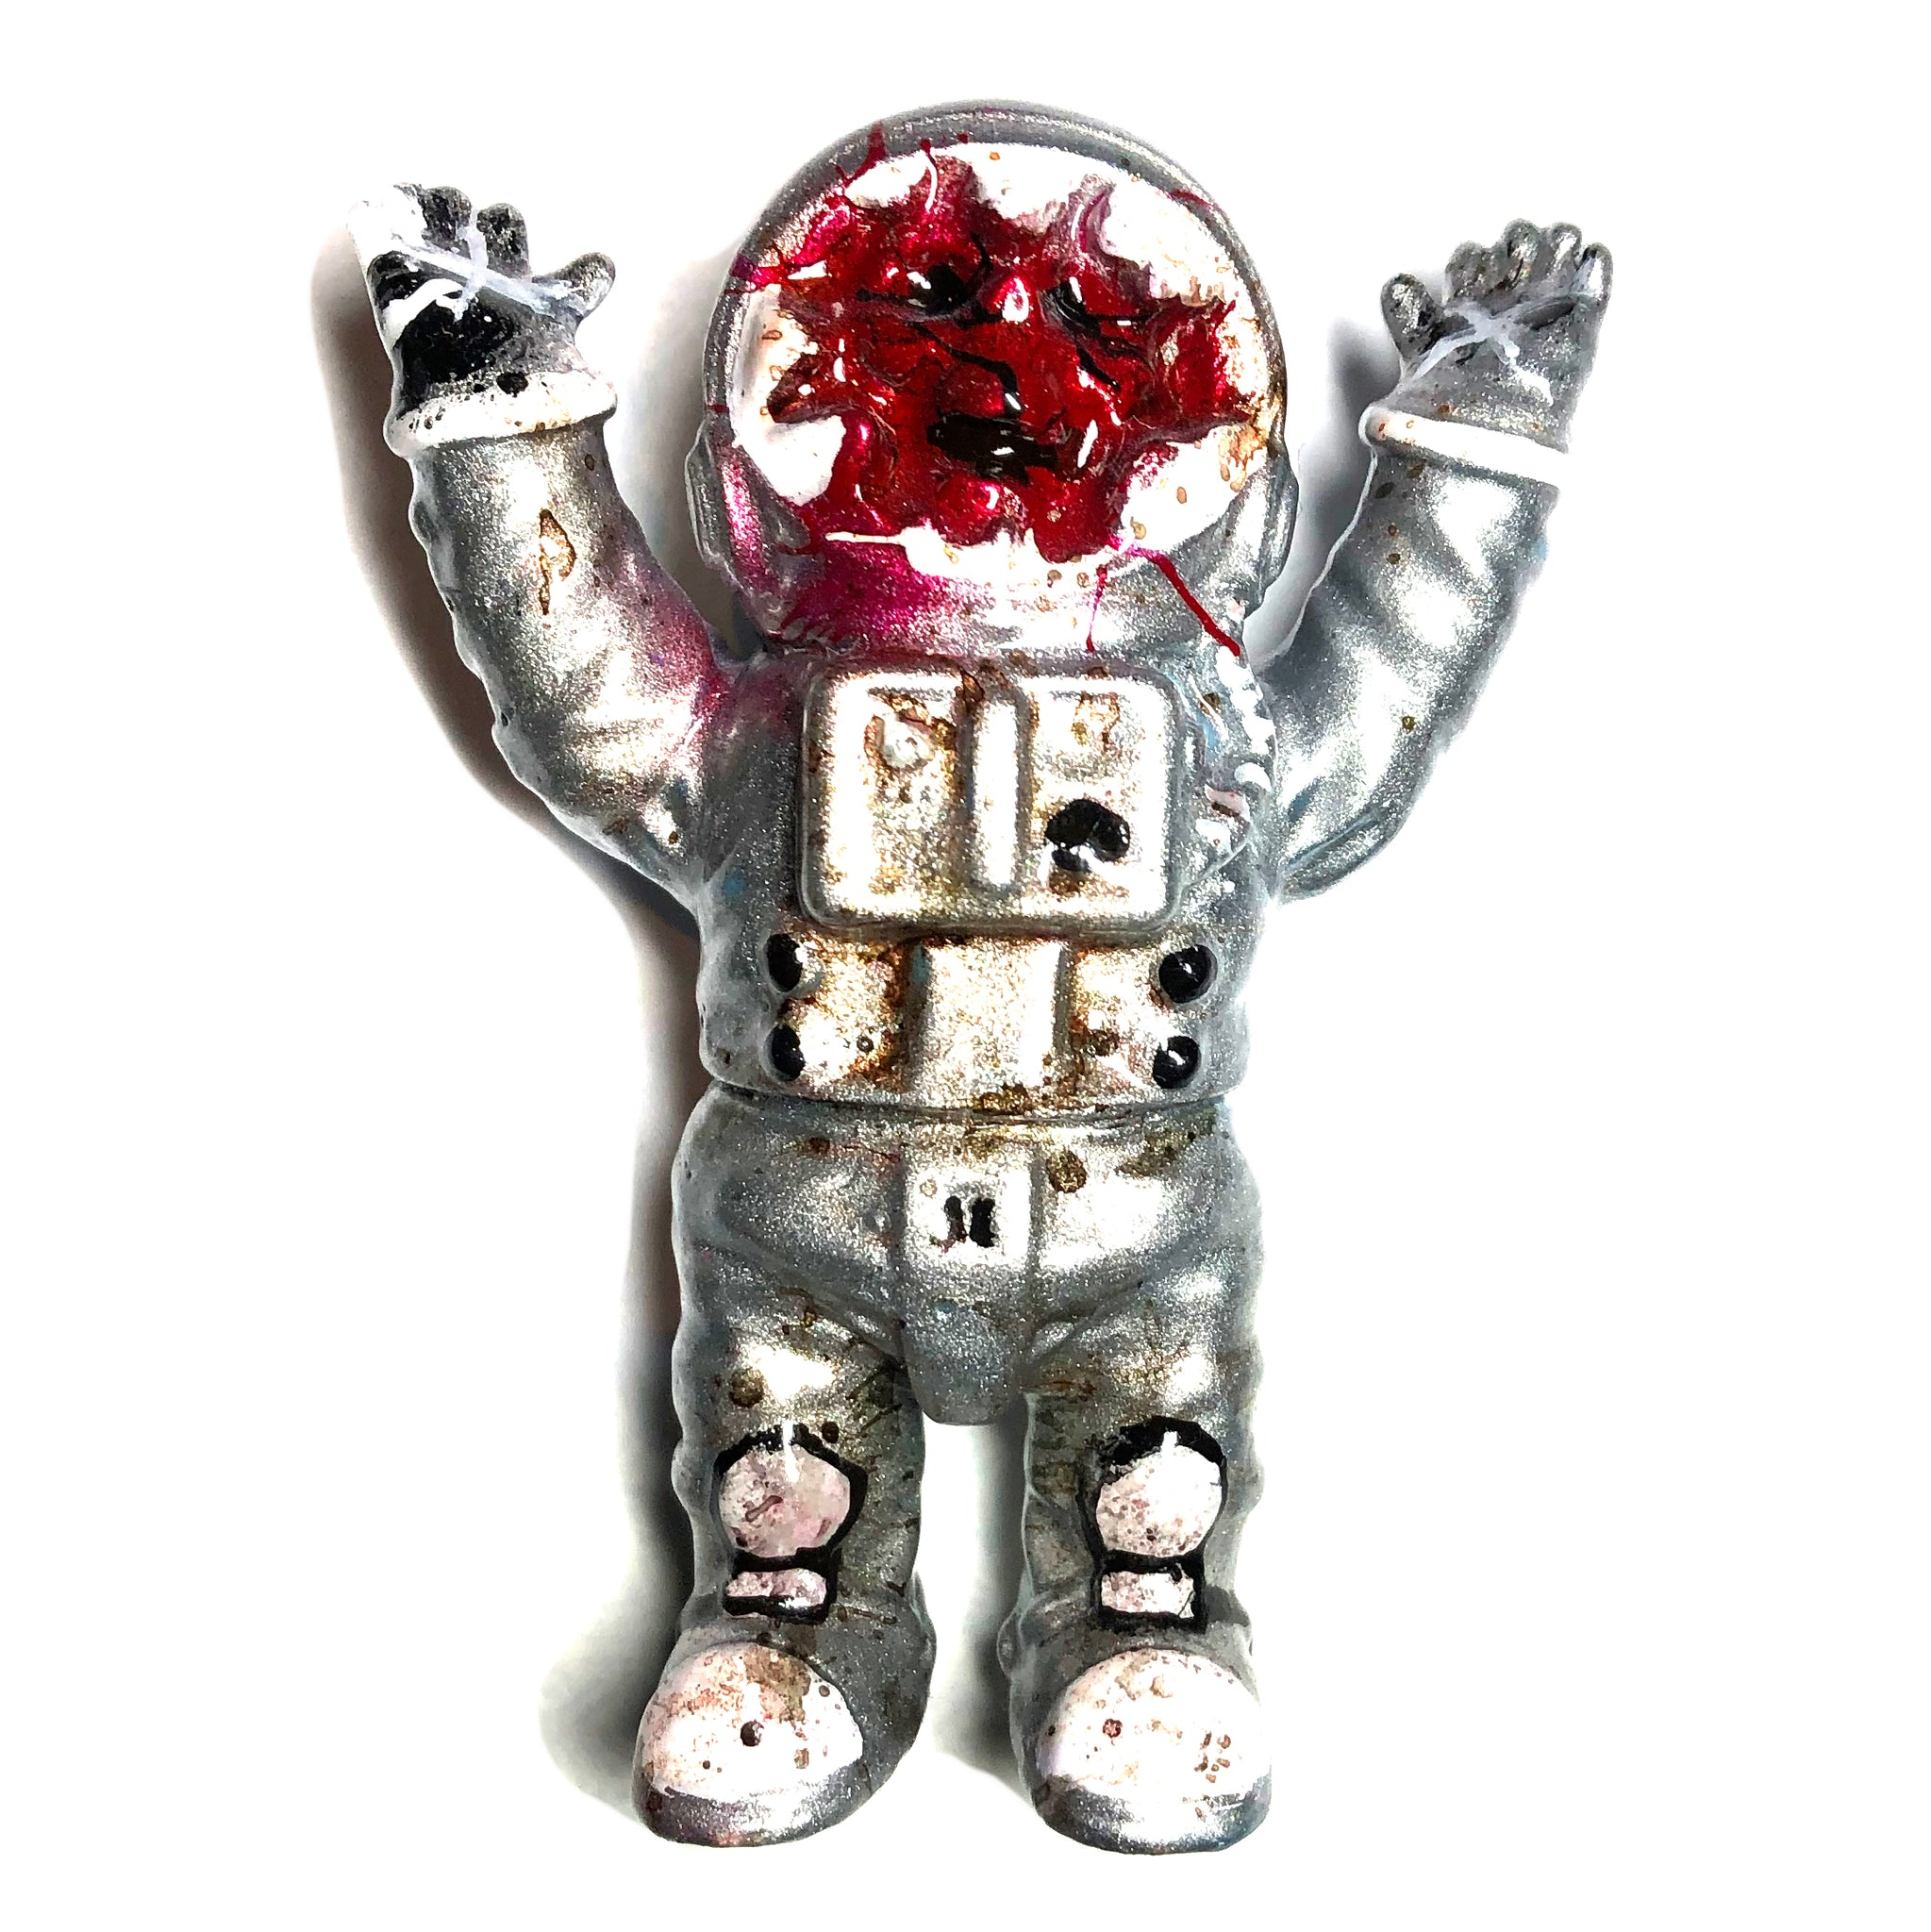 Dead Astronaut Sofubi by Mad Monk Custom Painted AEQEA Edit Space Man Designer Toy Figure